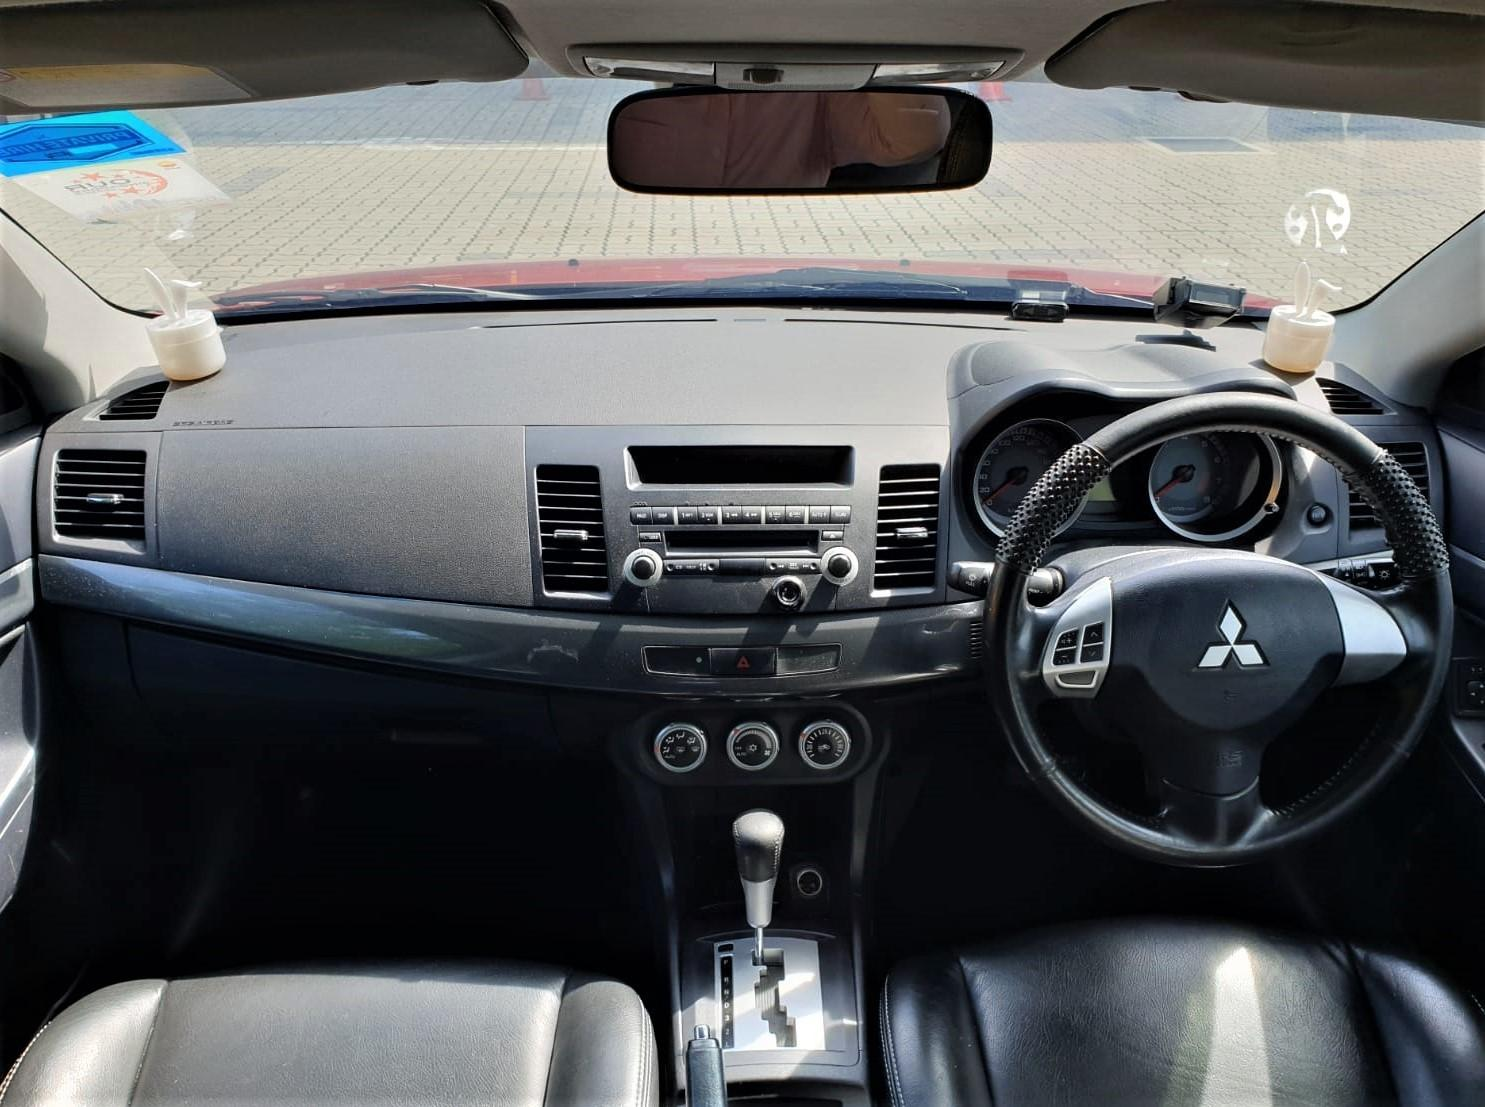 Mitsubishi Lancer EX 1.5A @ Lowest rental rates, good condition!